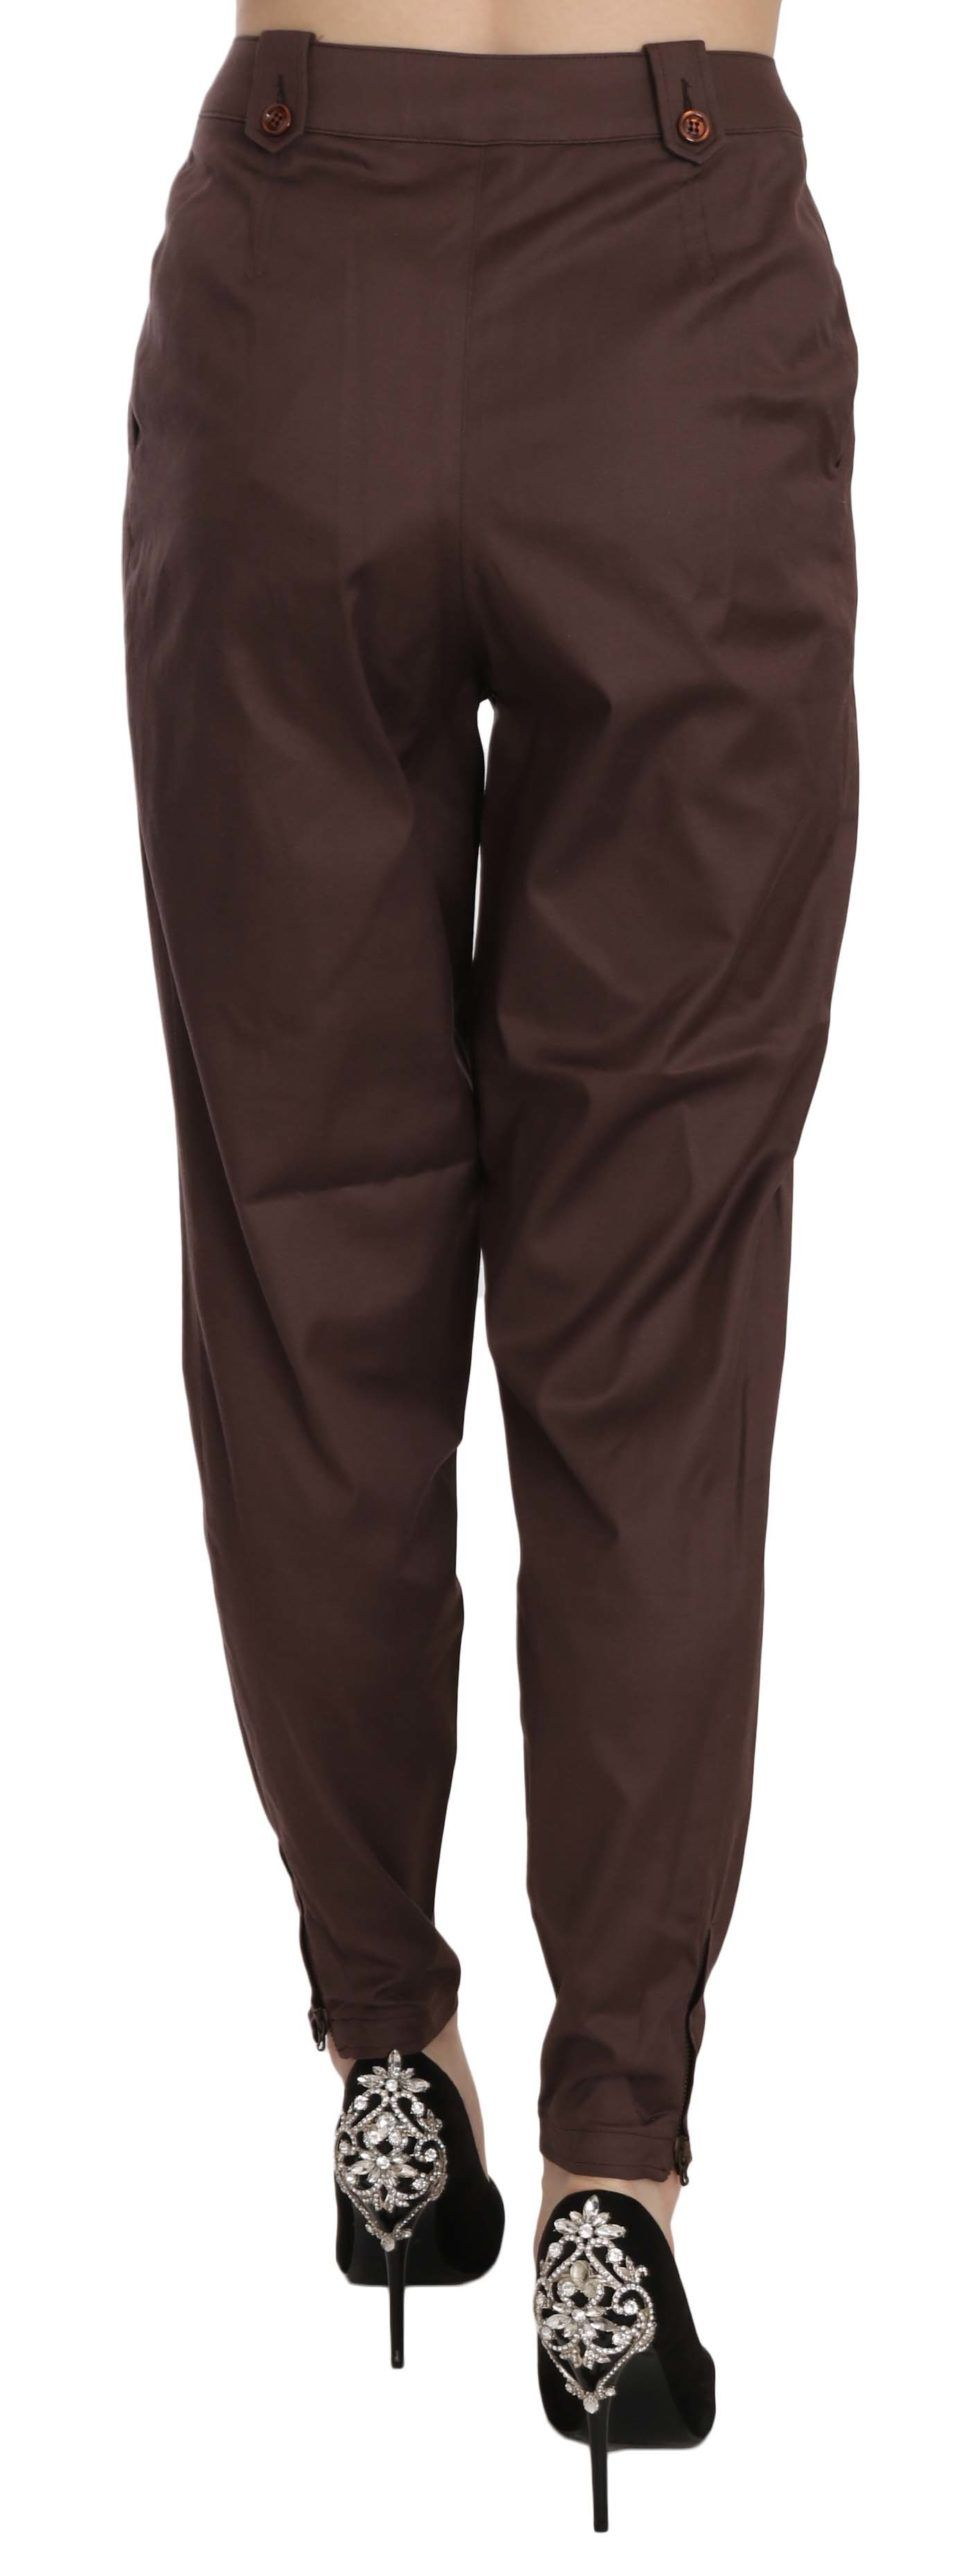 Just Cavalli Brown High Waist Tapered Formal Trousers Pants